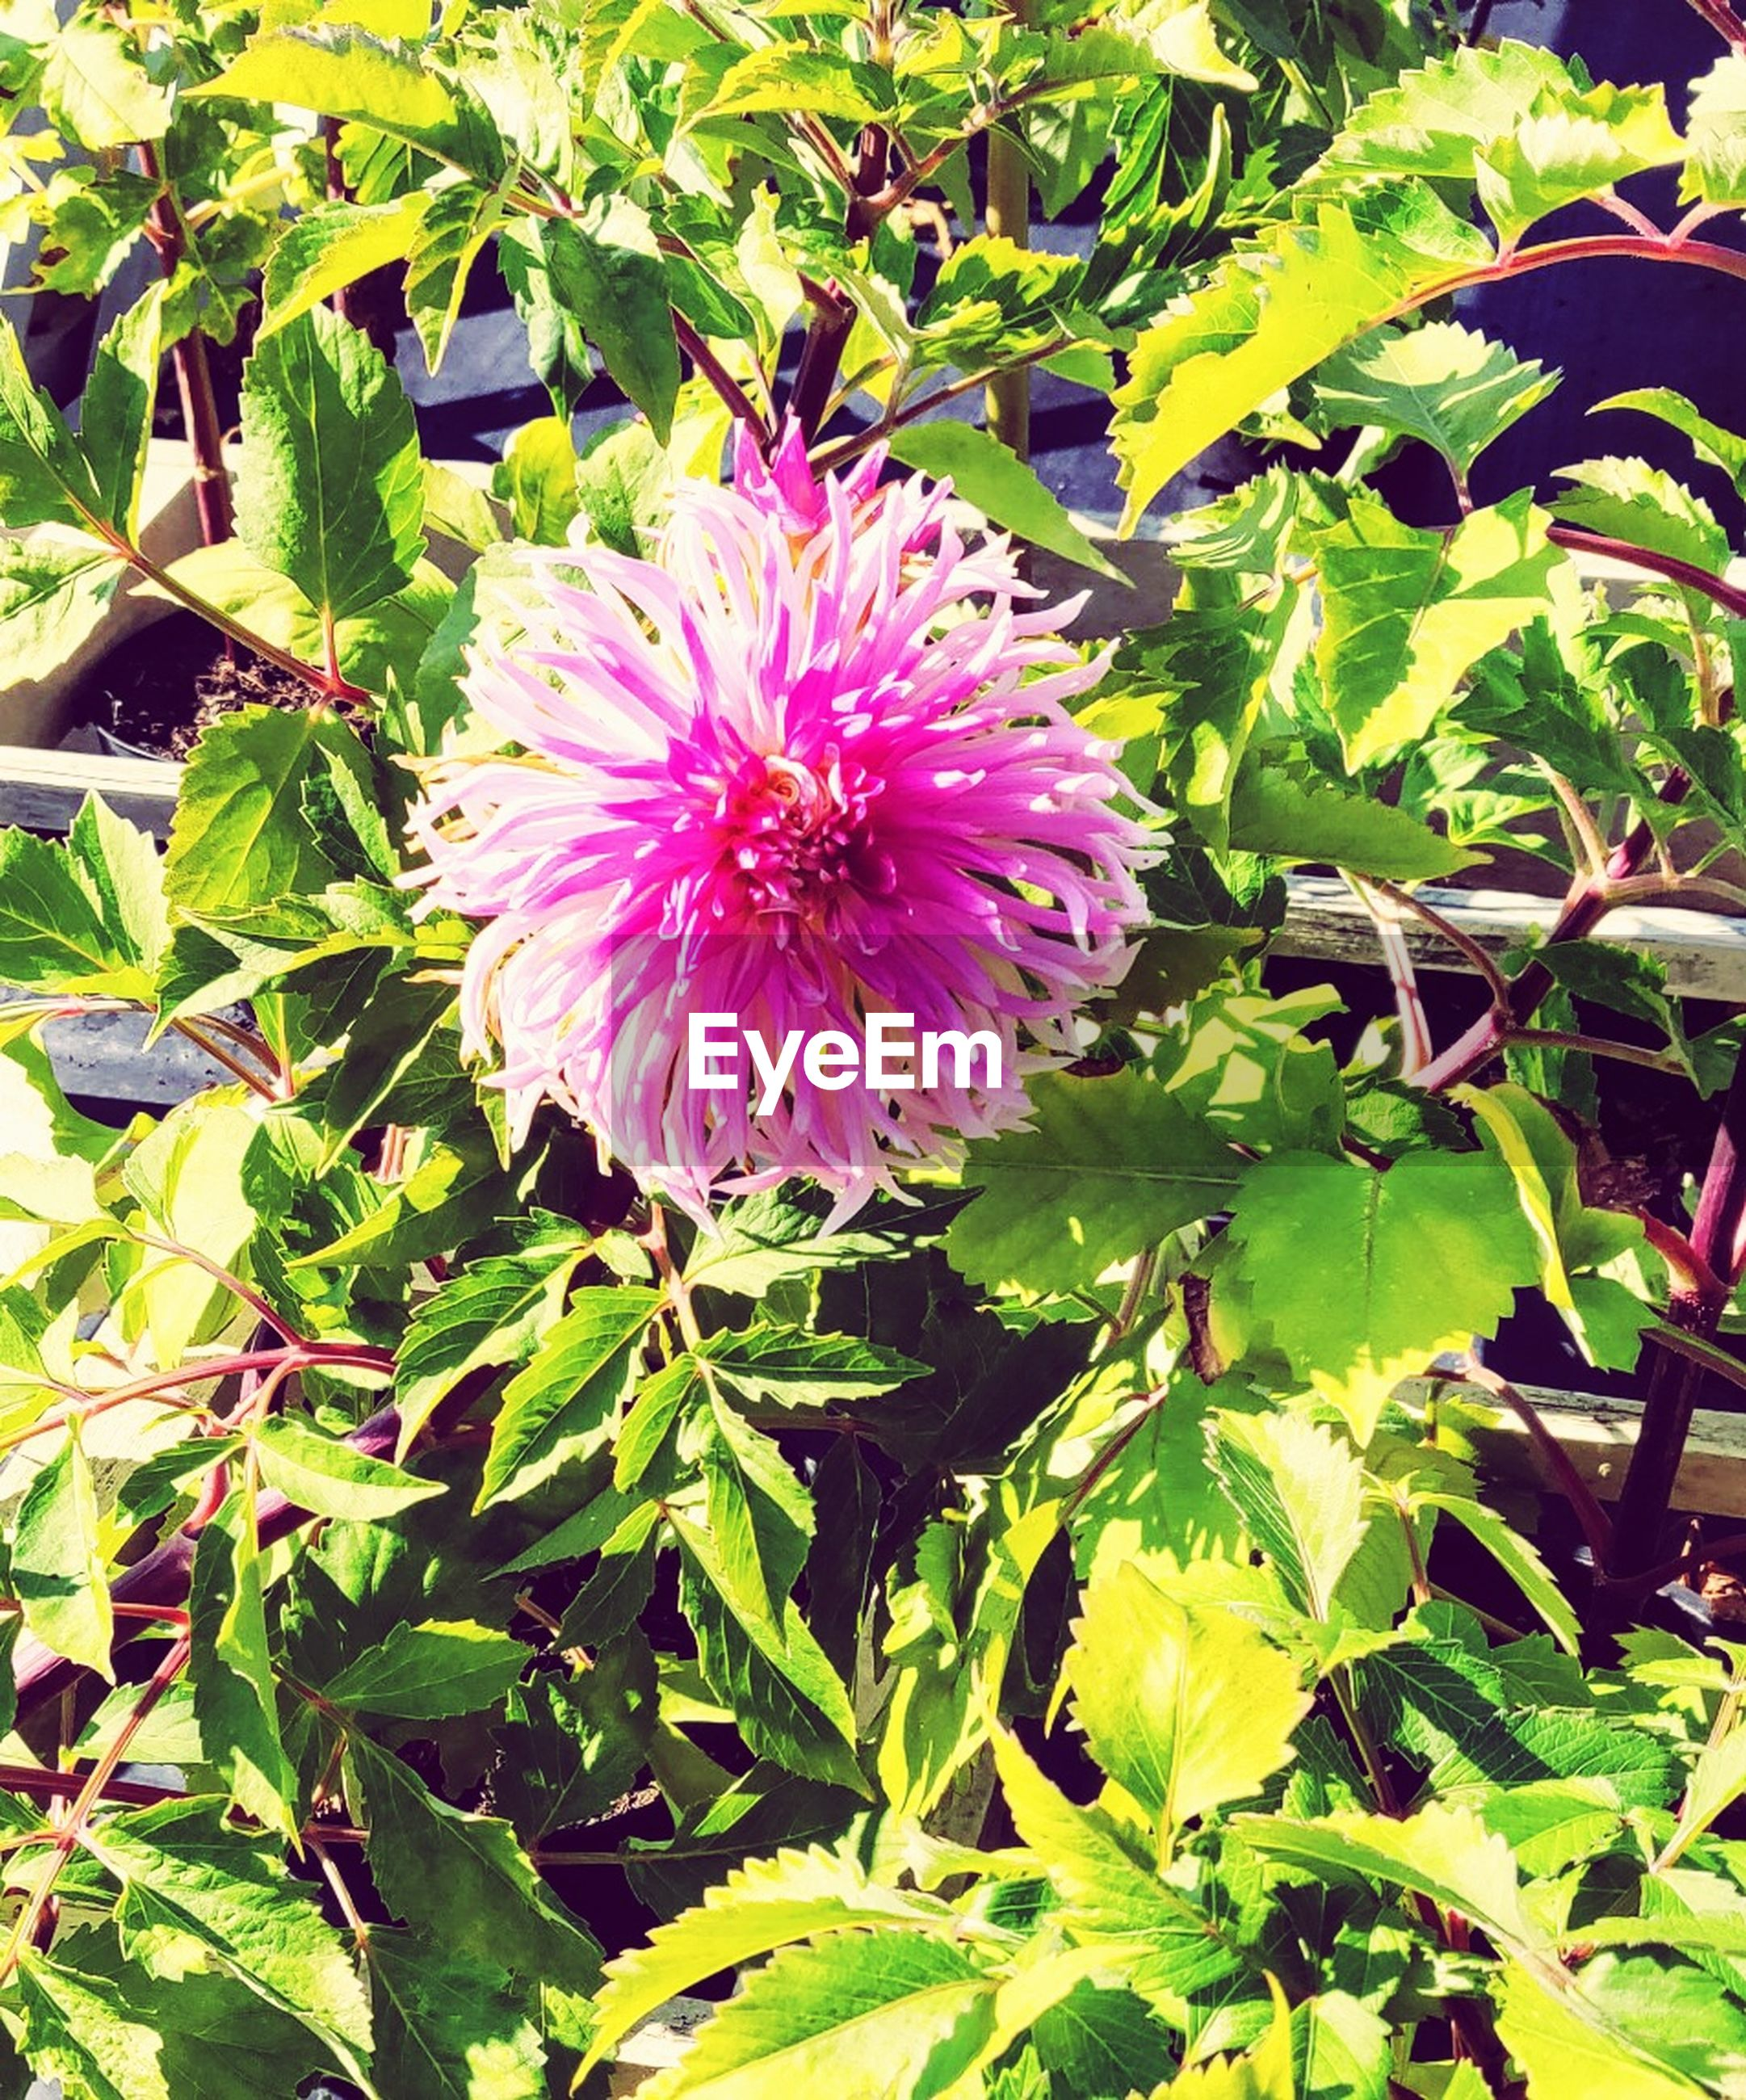 flower, plant, flowering plant, freshness, growth, beauty in nature, petal, fragility, flower head, leaf, inflorescence, plant part, vulnerability, close-up, pink color, nature, day, green color, no people, outdoors, springtime, purple, pollen